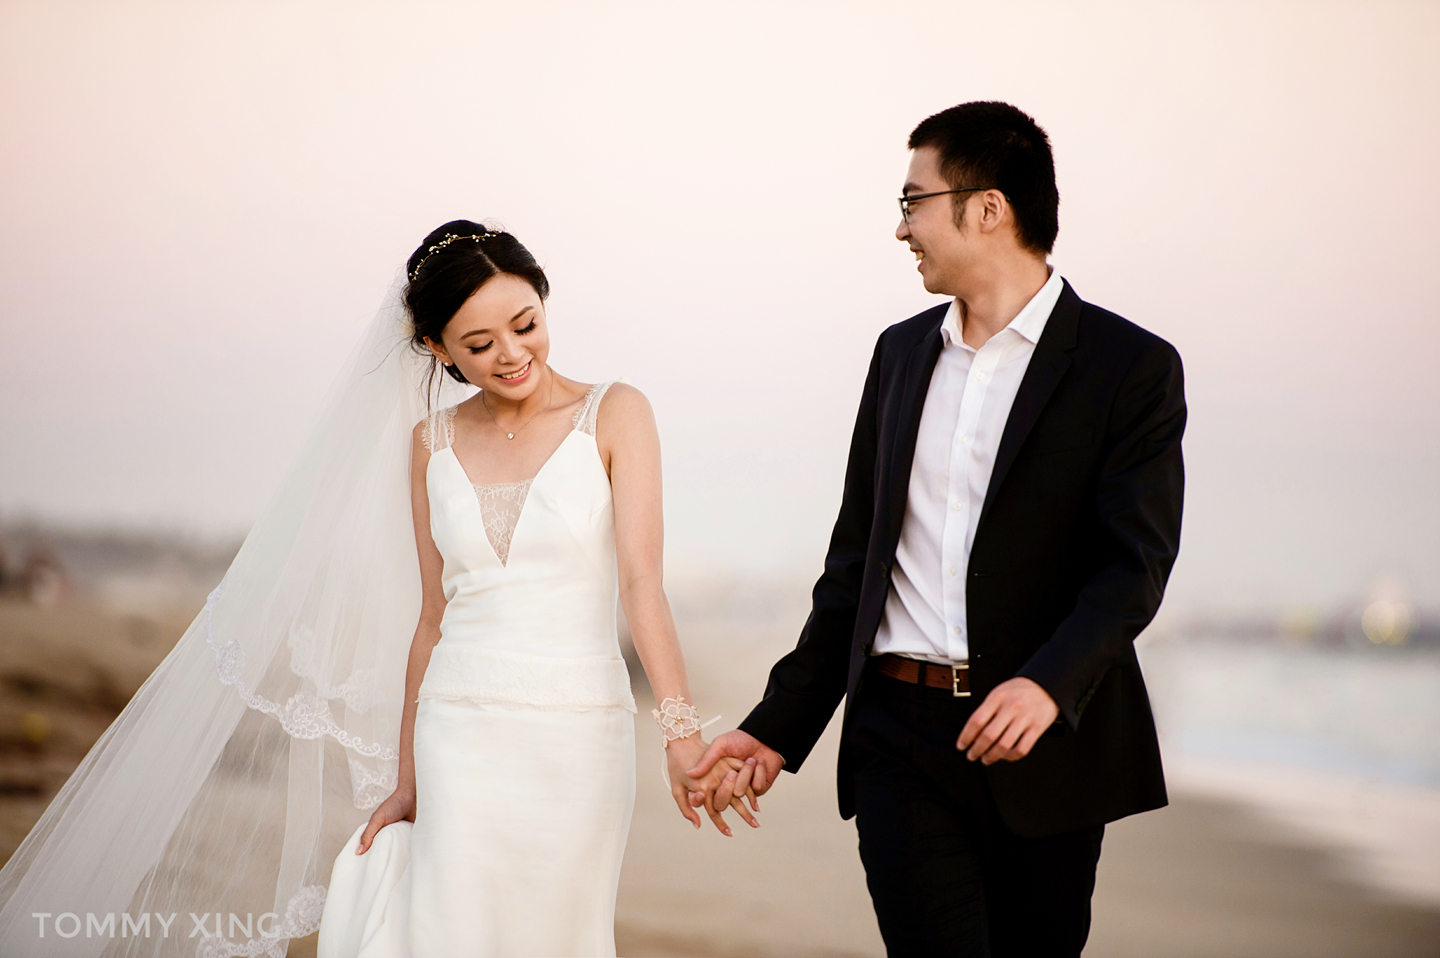 Los Angeles per-wedding 洛杉矶婚纱照 by Tommy Xing Photography 23.jpg